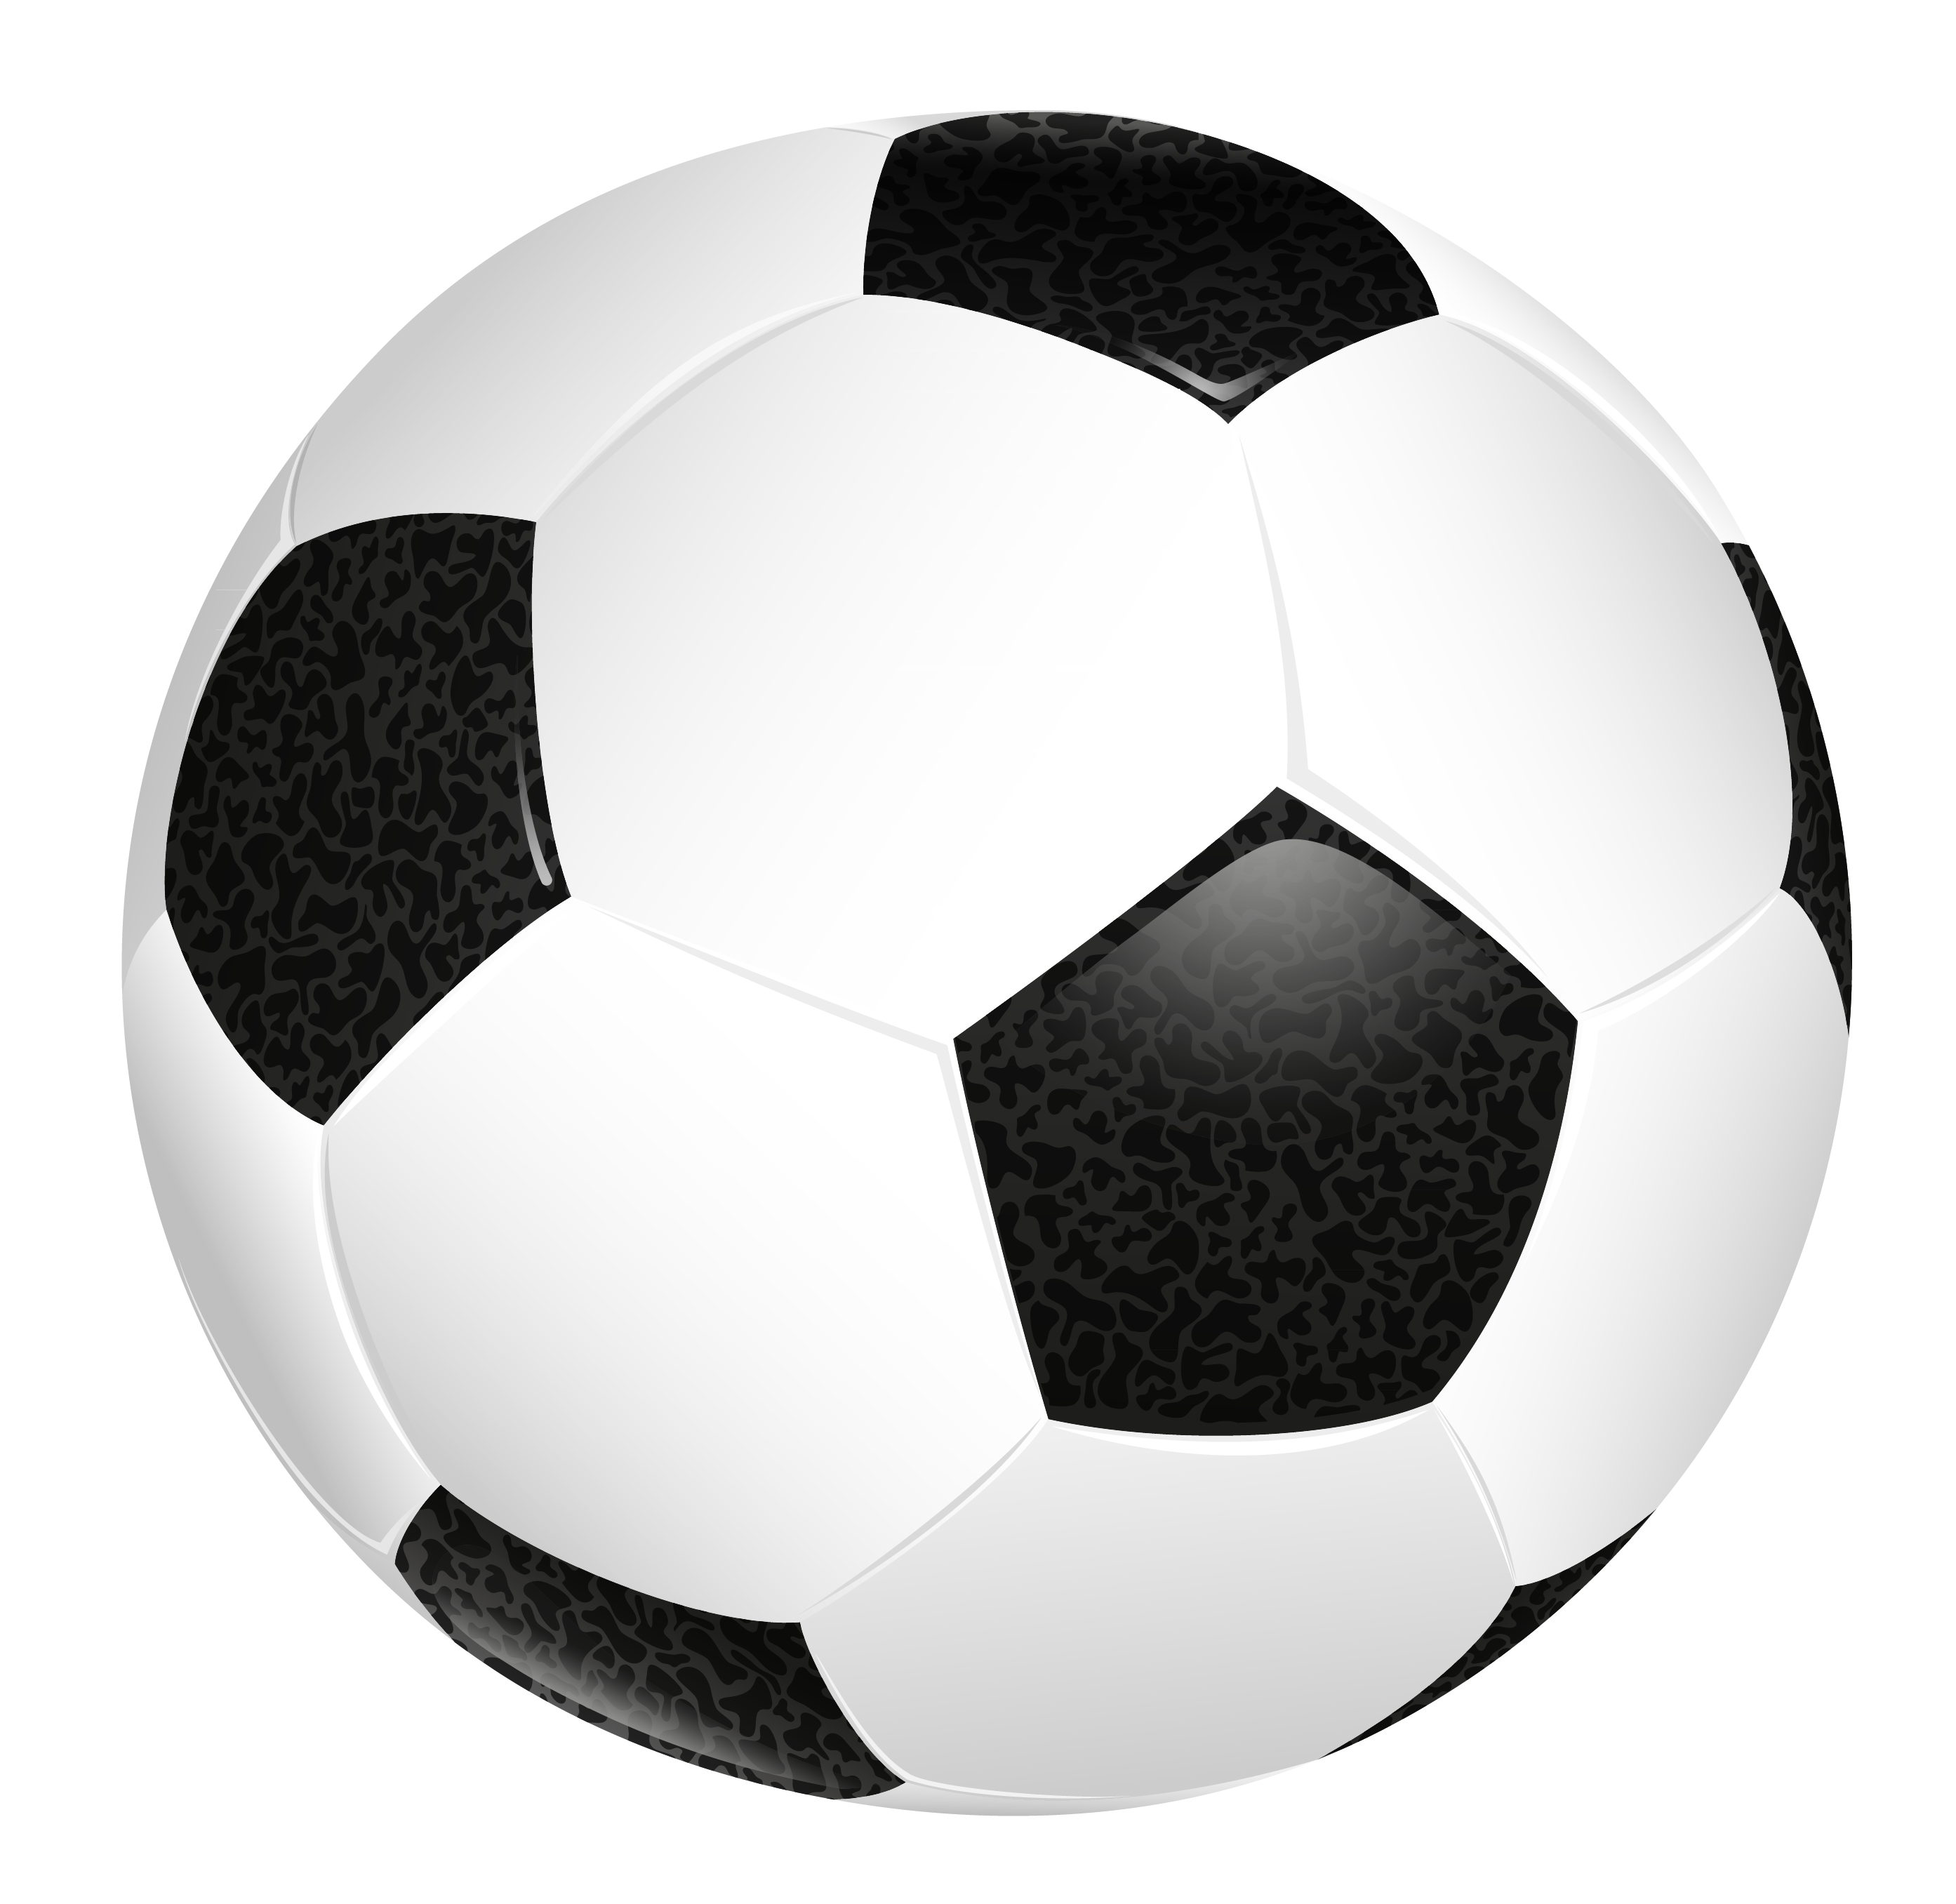 Soccerball Transparent PNG image #26386